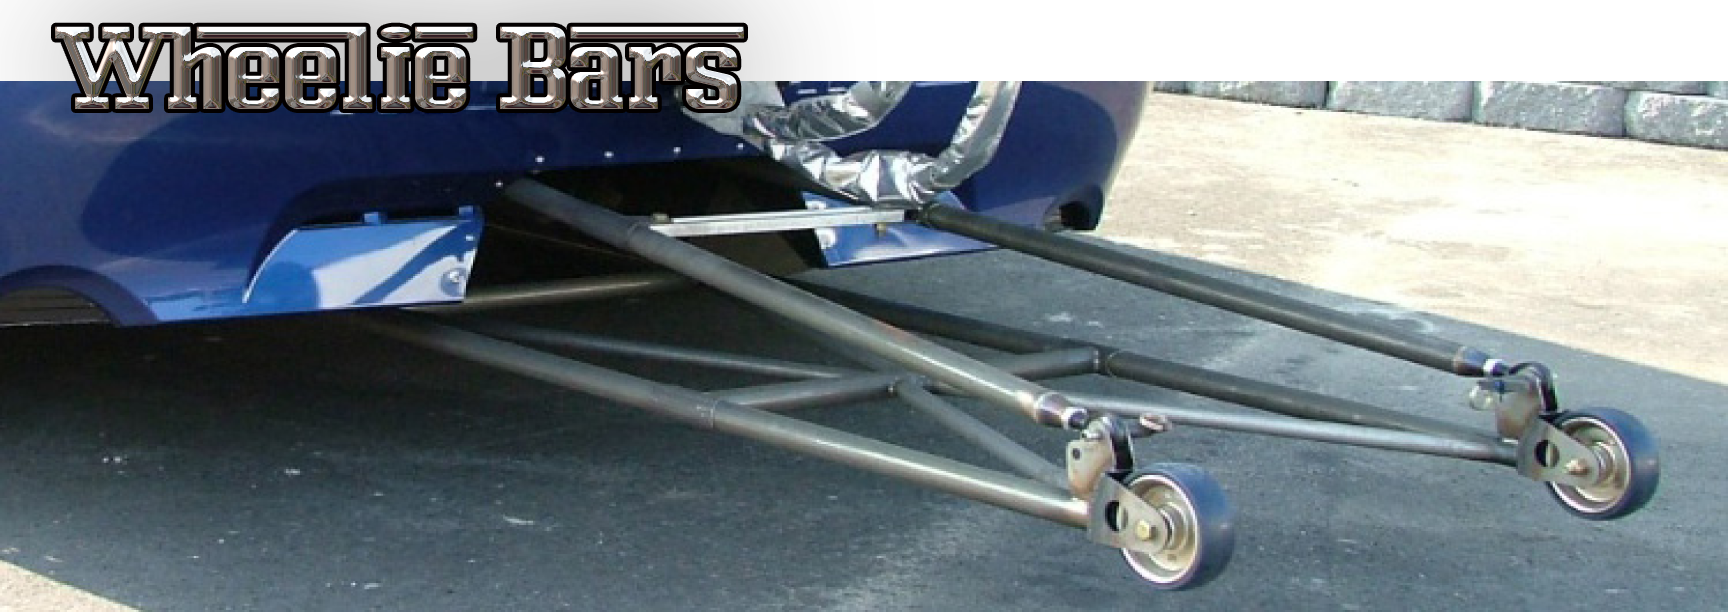 Wheelie Bars.png